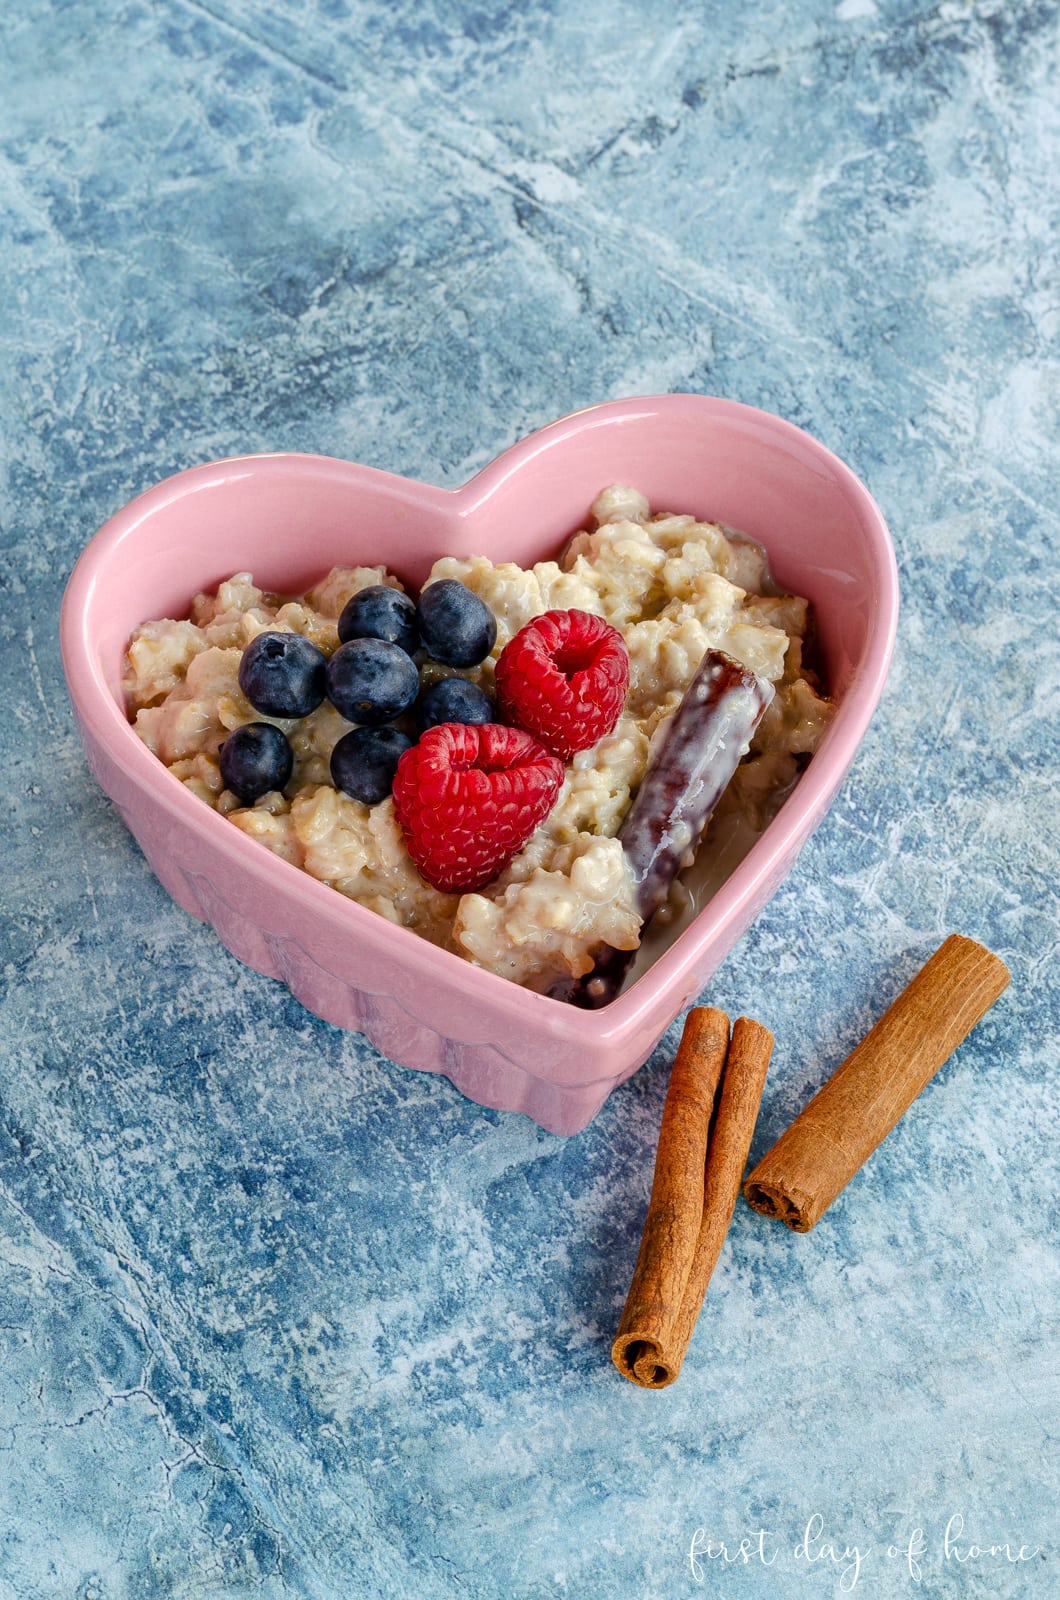 Traditional Mexican oatmeal in heart-shaped dish with blueberries, raspberries and cinnamon sticks